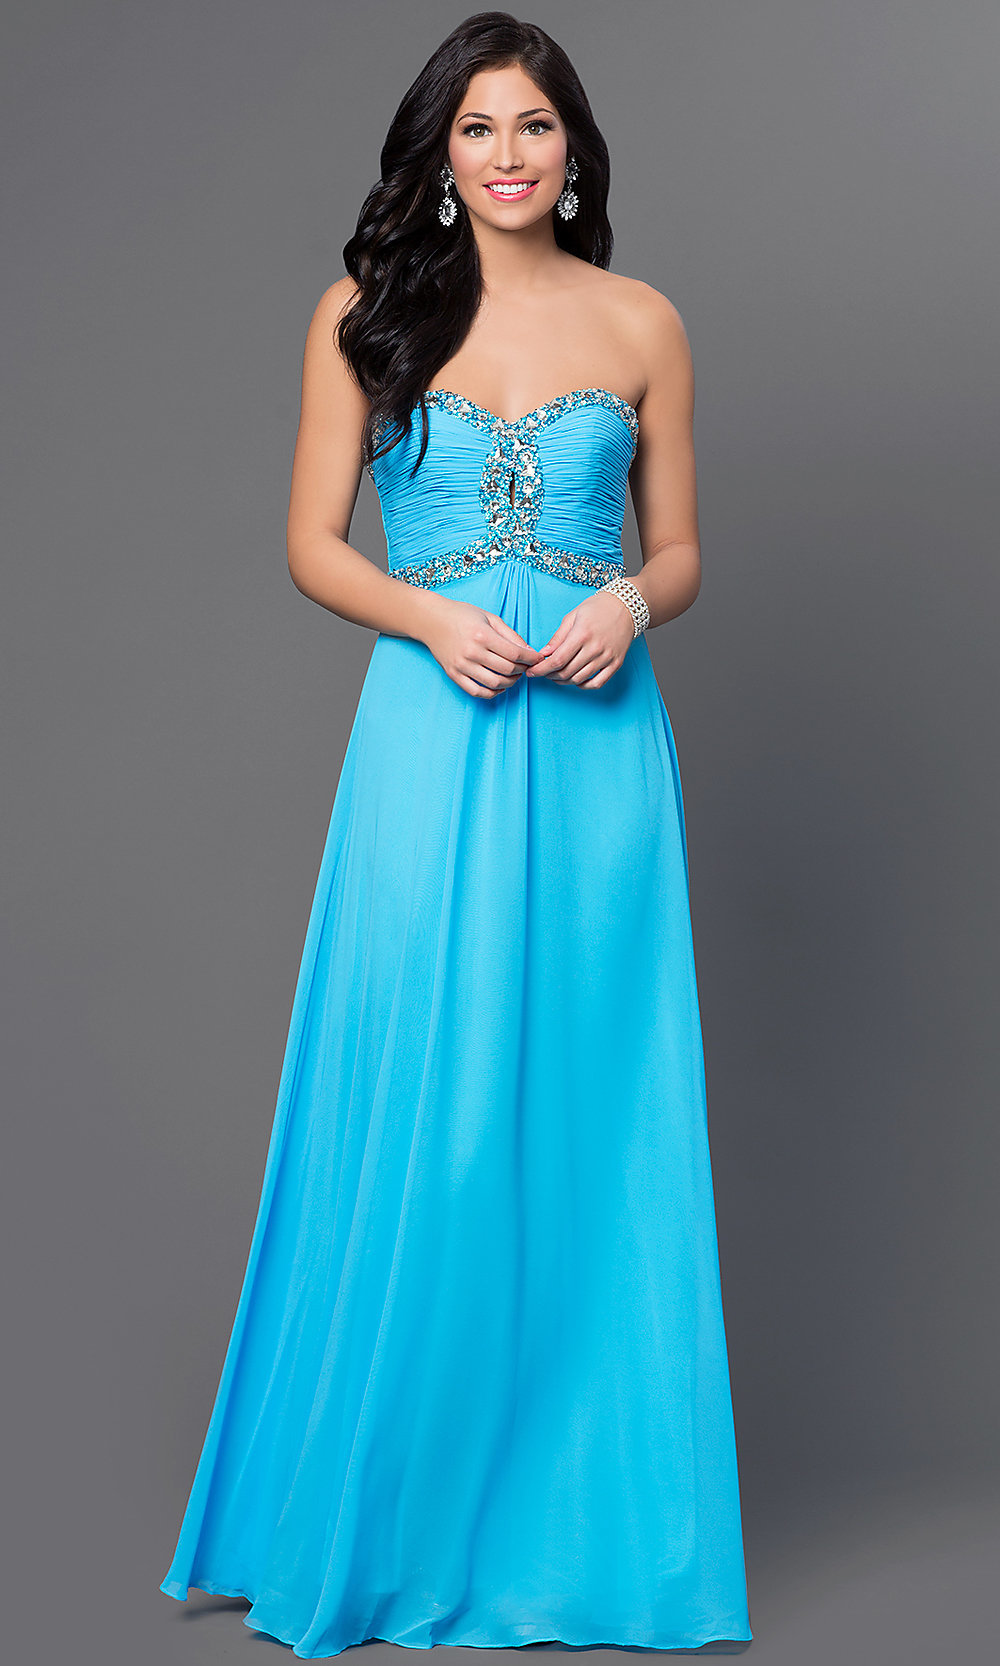 Faviana Prom Gowns, Homecoming Dresses - p1 (by 32 - low price)